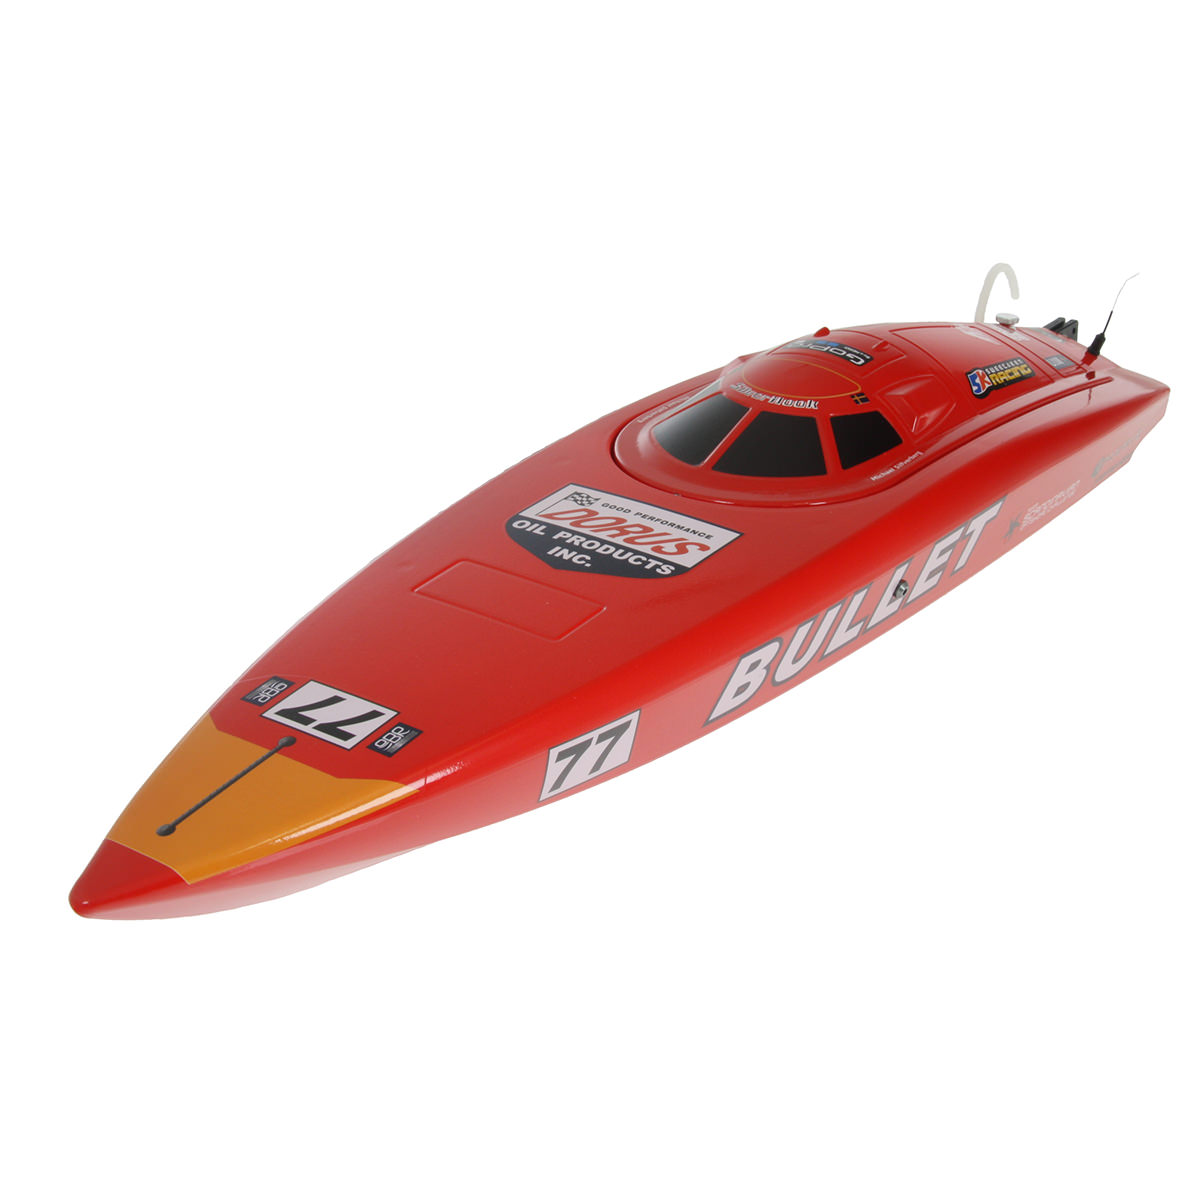 hobby horse rc with Joysway 8301 Red Bullet Rc Speed Boat on hobbyflip p10421x Drone Nano H107r Lipo 37v Usb Battery Charger Any Mah Auto Shut Off W Led additionally Joysway 8301 Red Bullet Rc Speed Boat in addition 251354218471 also T40 20instruction 20manual furthermore Joysway 6106 Smart K V2 Rc Glider Mode 2.